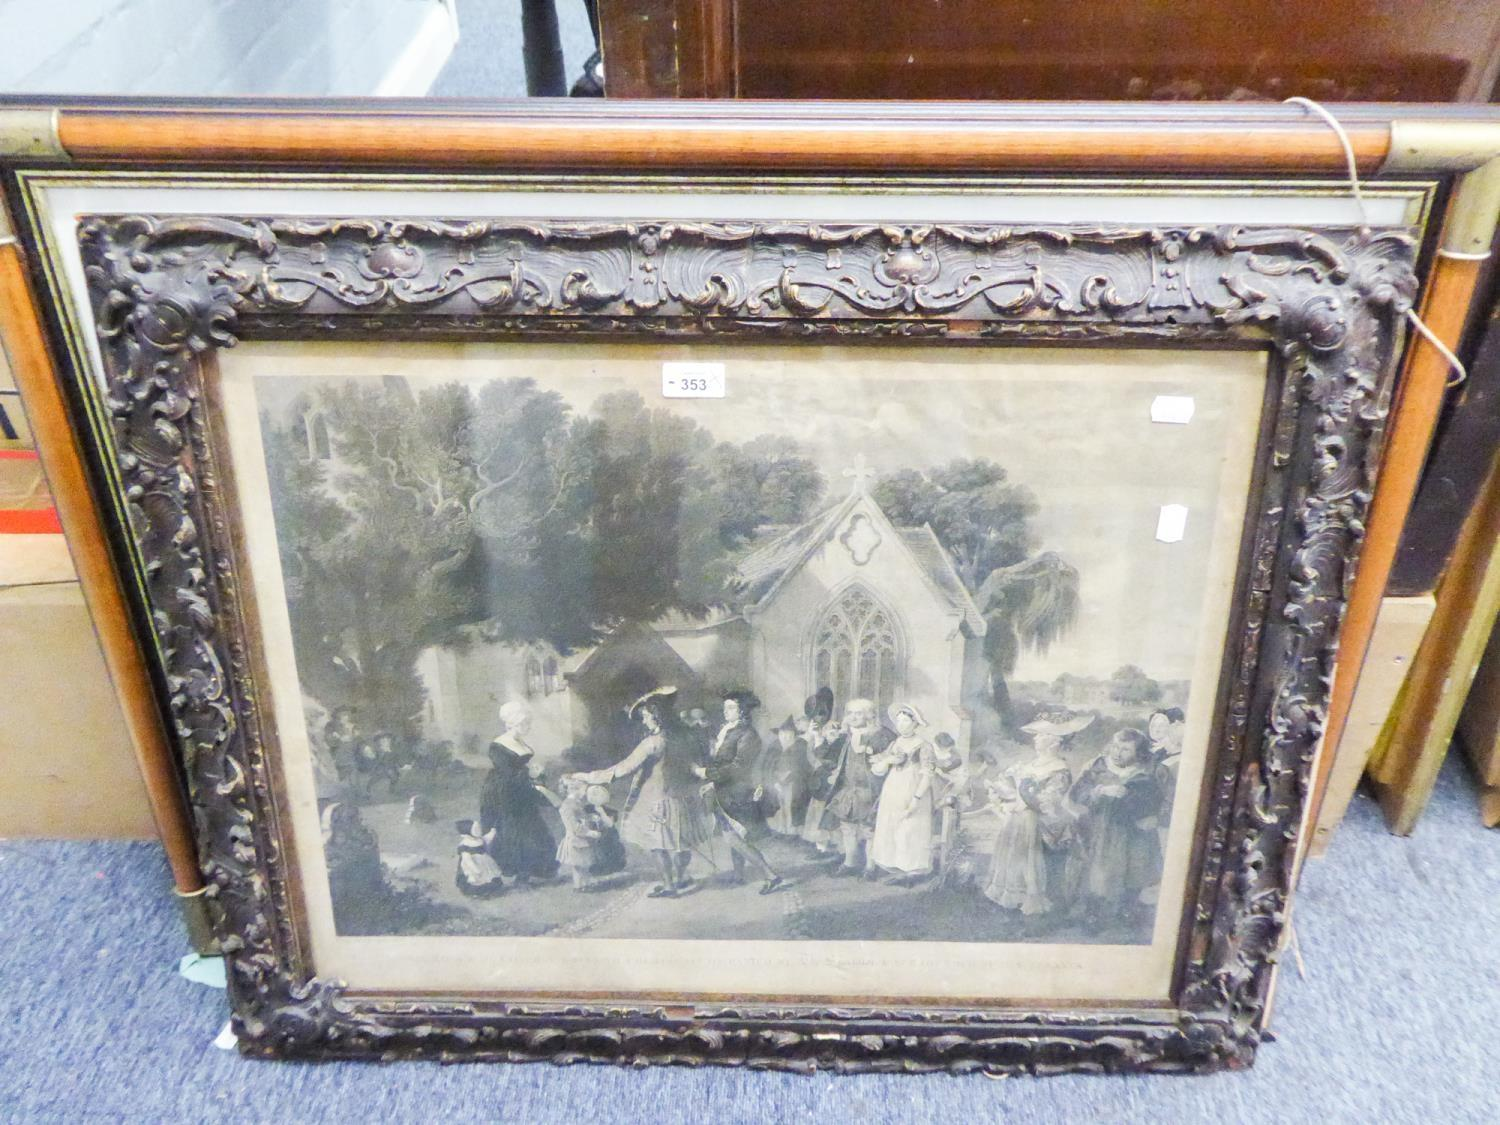 Lot 353 - AFTER LESLIE, OLD BLACK AND WHITE ENGRAVING, FIGURES OUTSIDE A CHURCH, IN LATER FRAME AND A SMALL